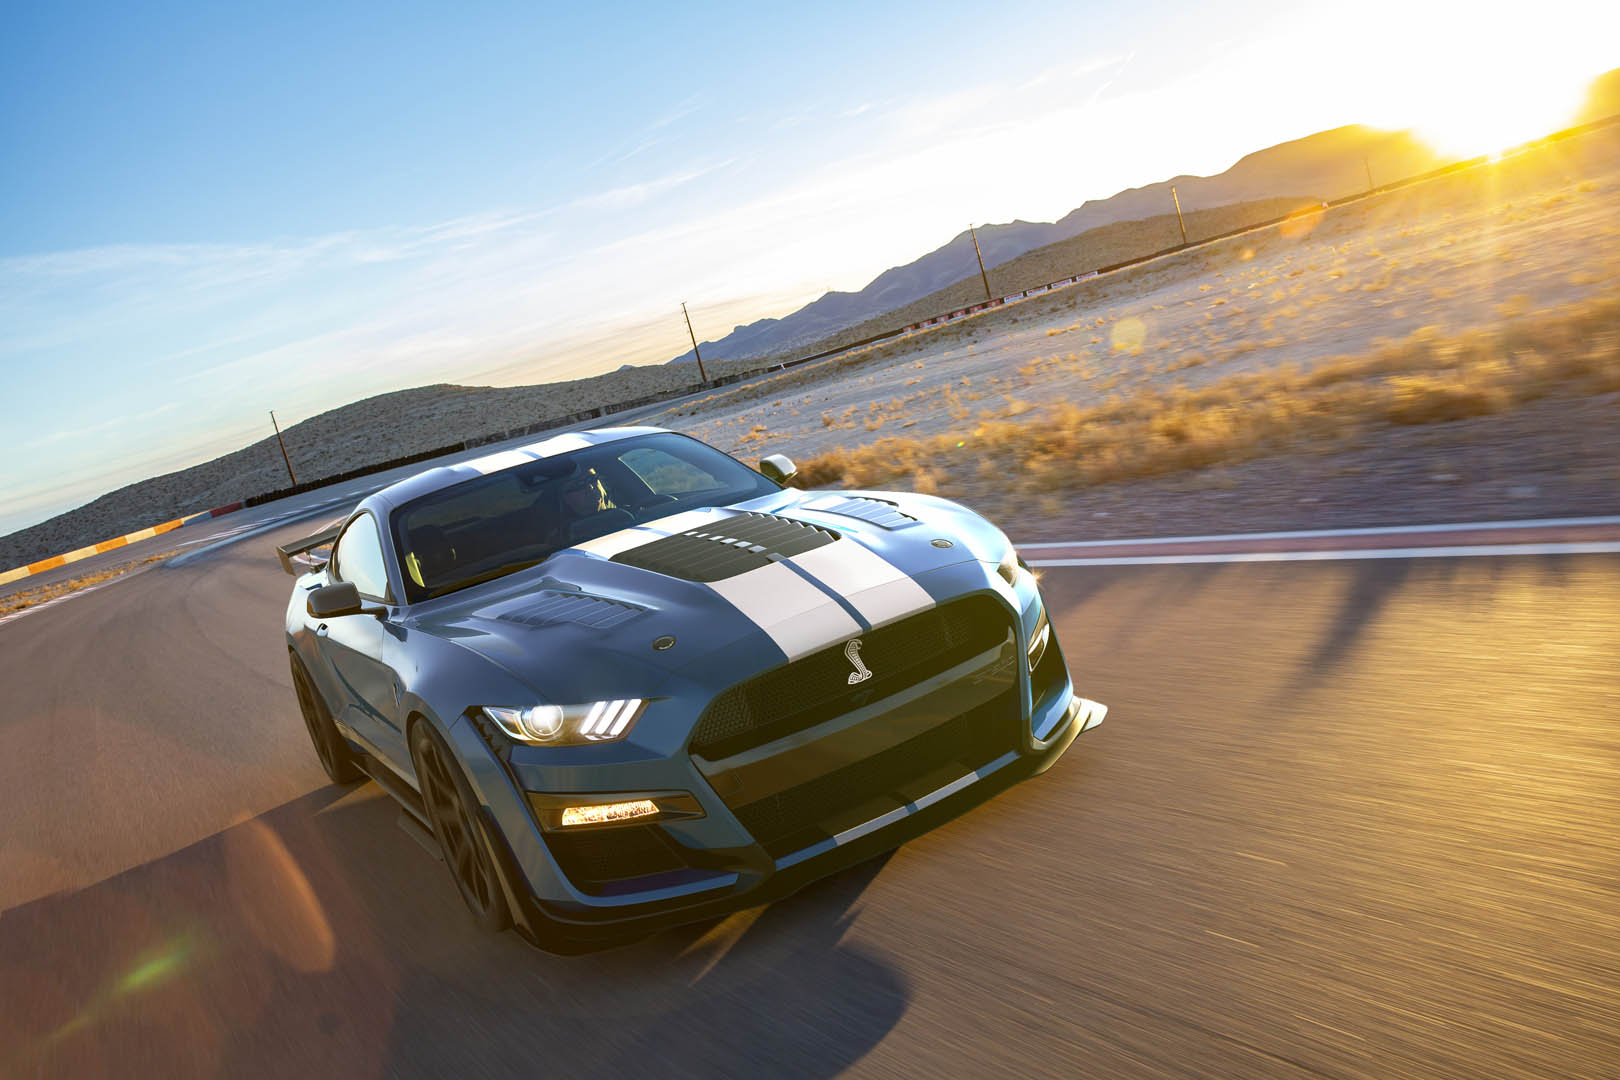 Shelby American tunes the GT500 to 800+ hp